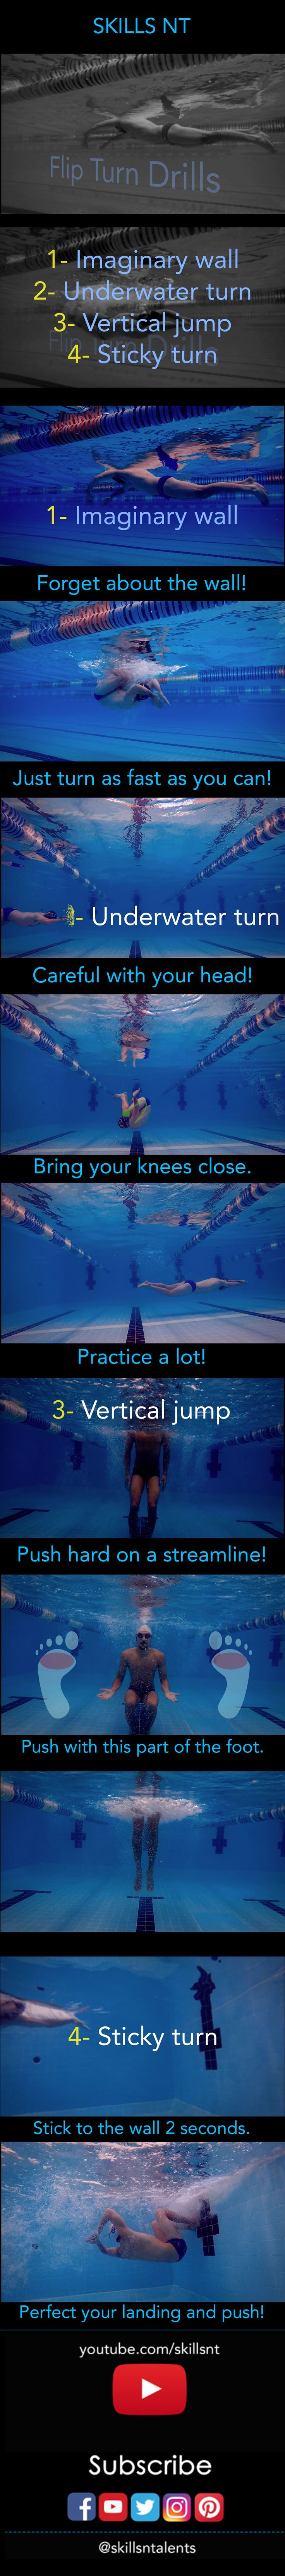 Flip turn drills! For full video tutorials click on the image or follow the link on the bio.